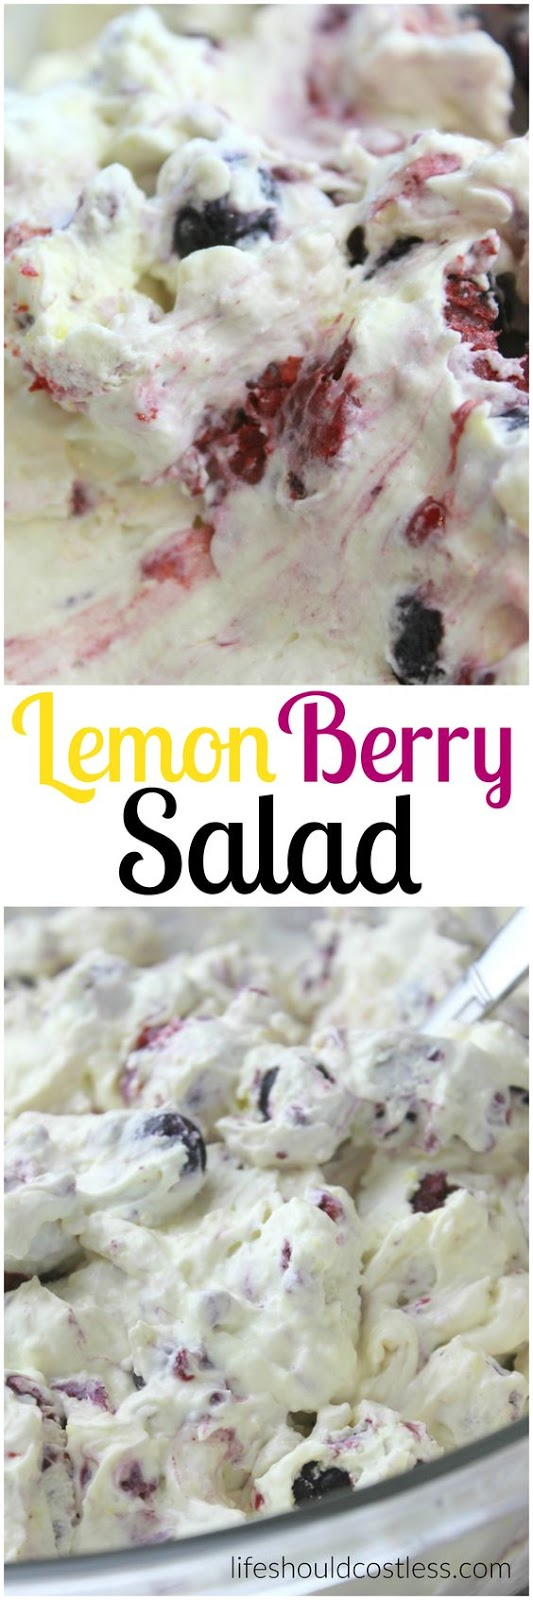 Lemon Berry Salad